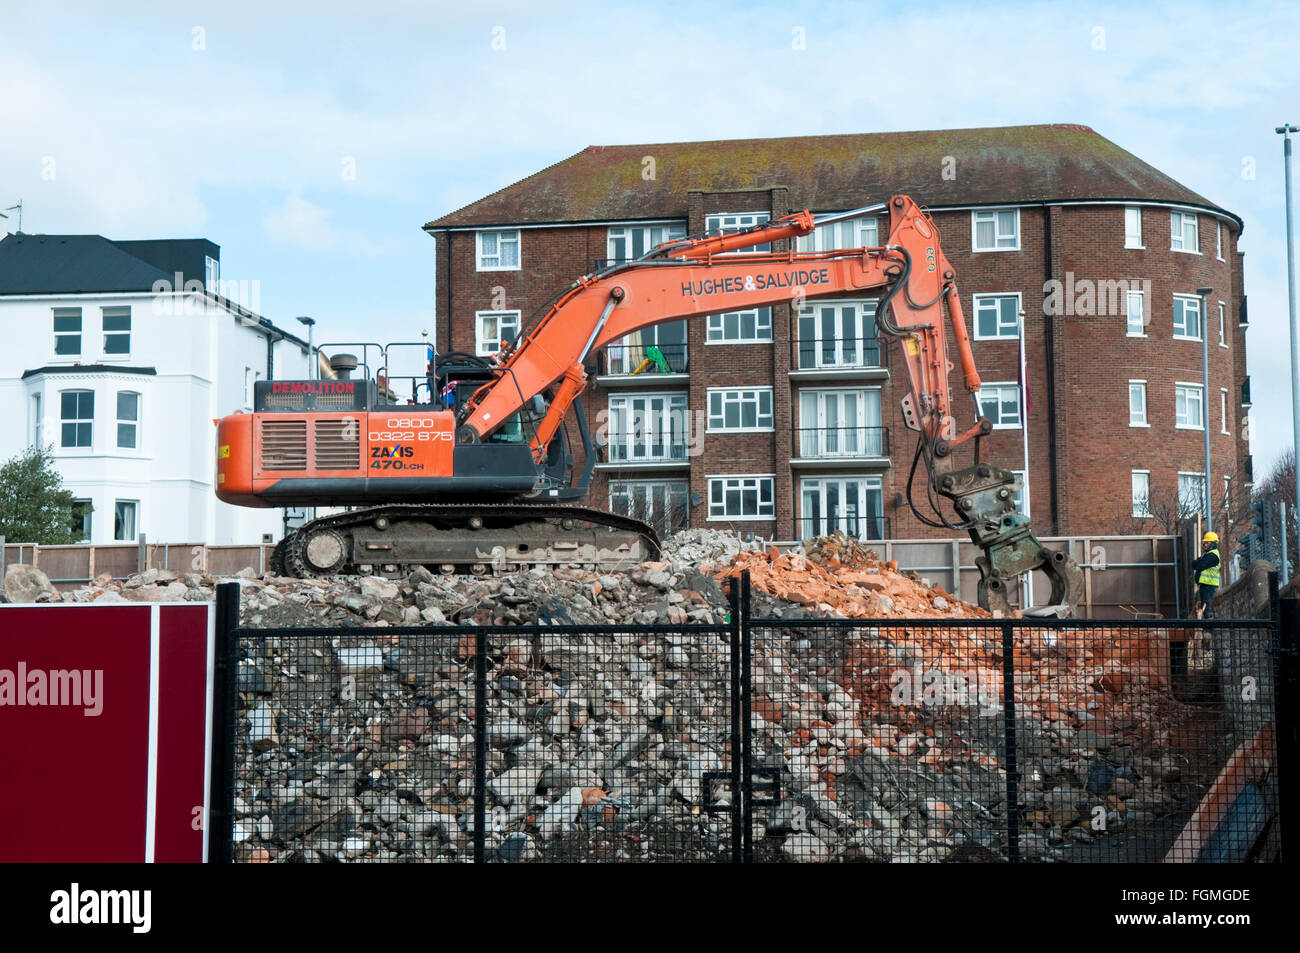 A Hitachi Zaxis 470 LCH Crawler Excavator with grabber attachment being used for building demolition work - Stock Image